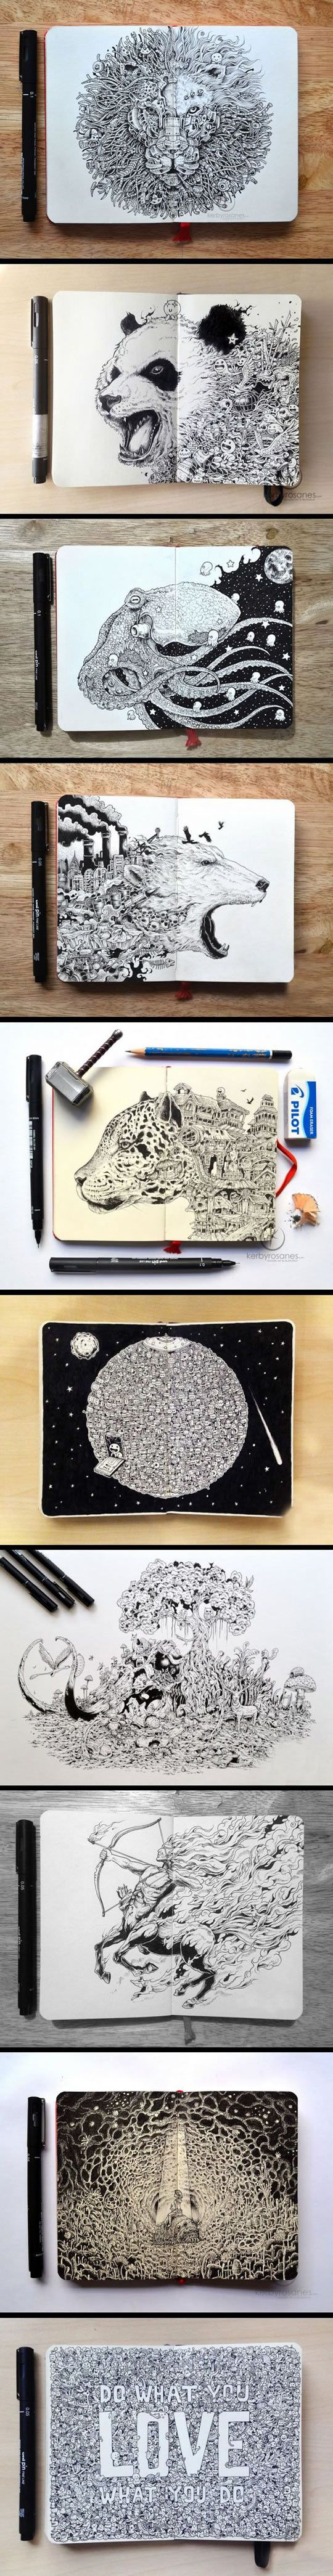 http://themetapicture.com/hyper-detailed-drawings/